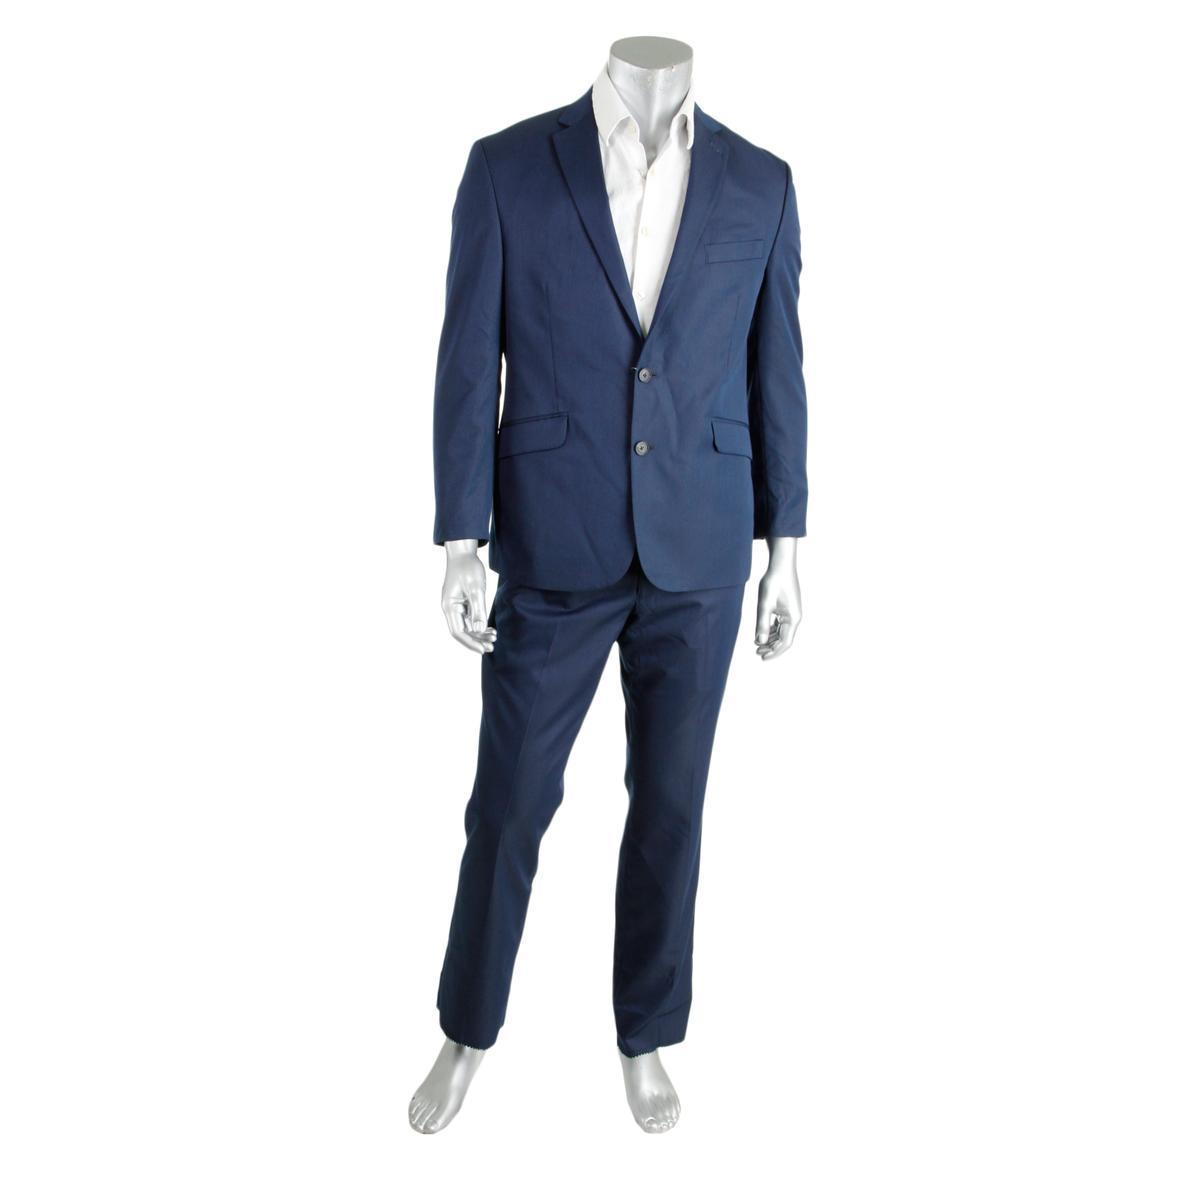 This Is For You!  Kenneth Cole Reaction 5780 Mens Blue Pinstripe 2PC ... 83a46e75e09b7